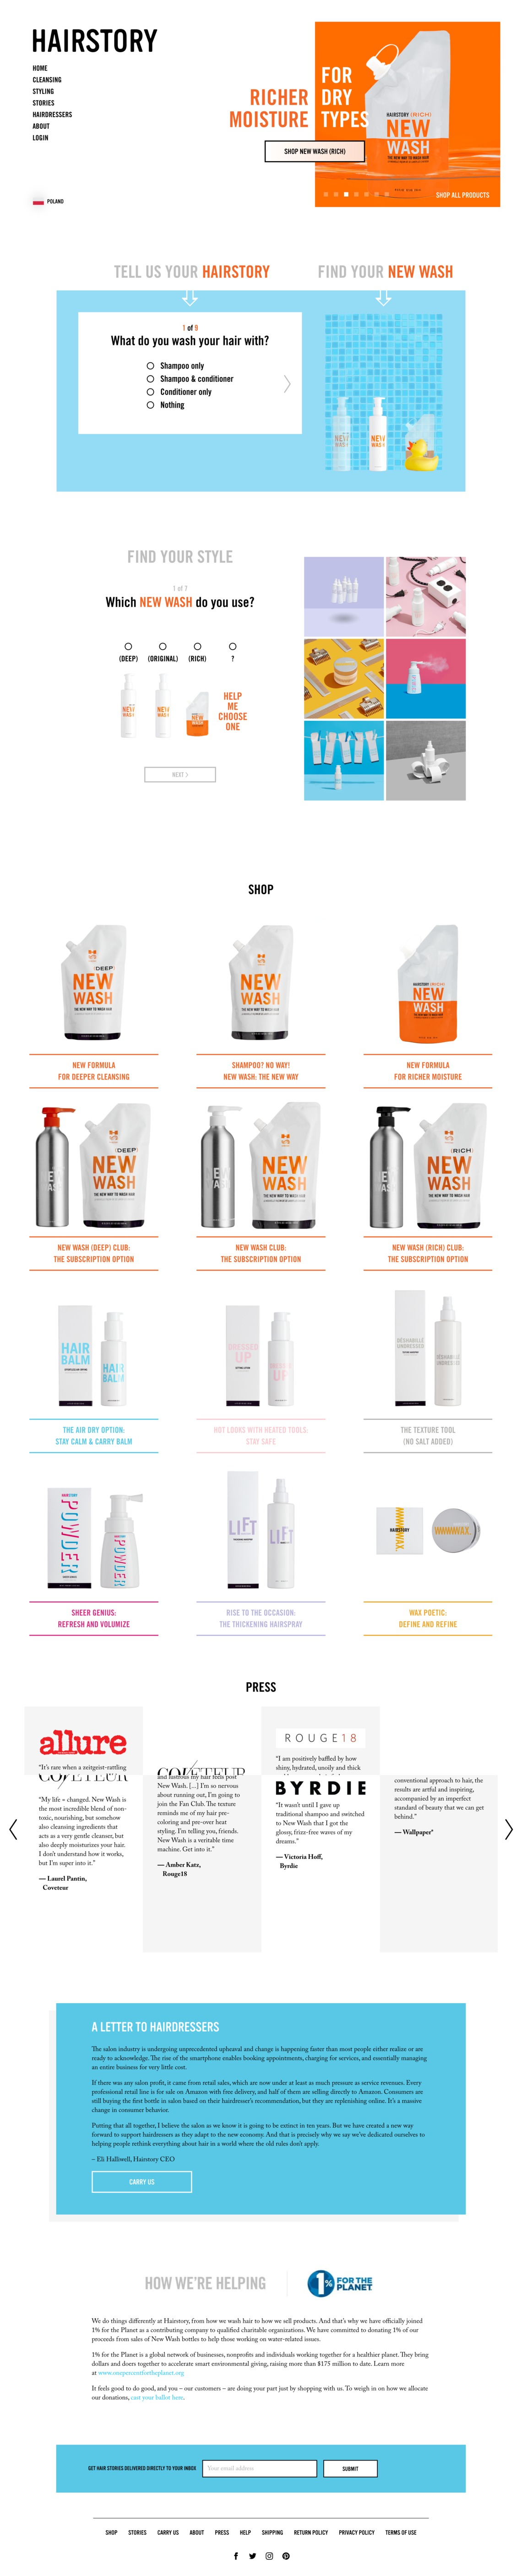 Hairstory™ | Discover the New Way to Wash Hair